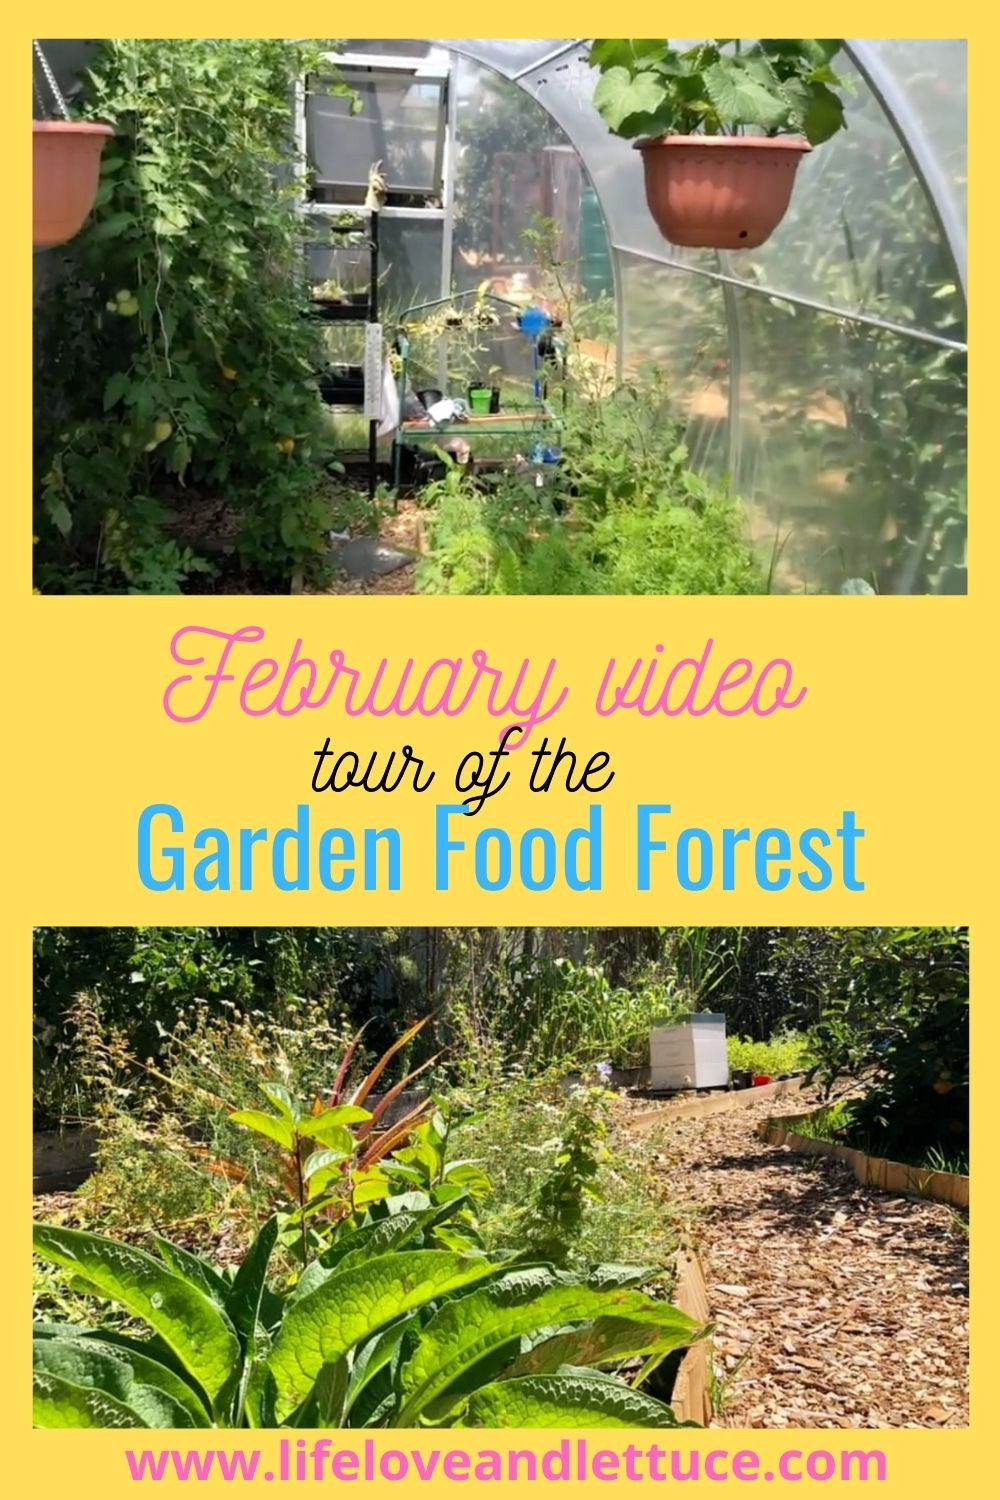 February Forest garden tour www.lifeloveandlettuce.com